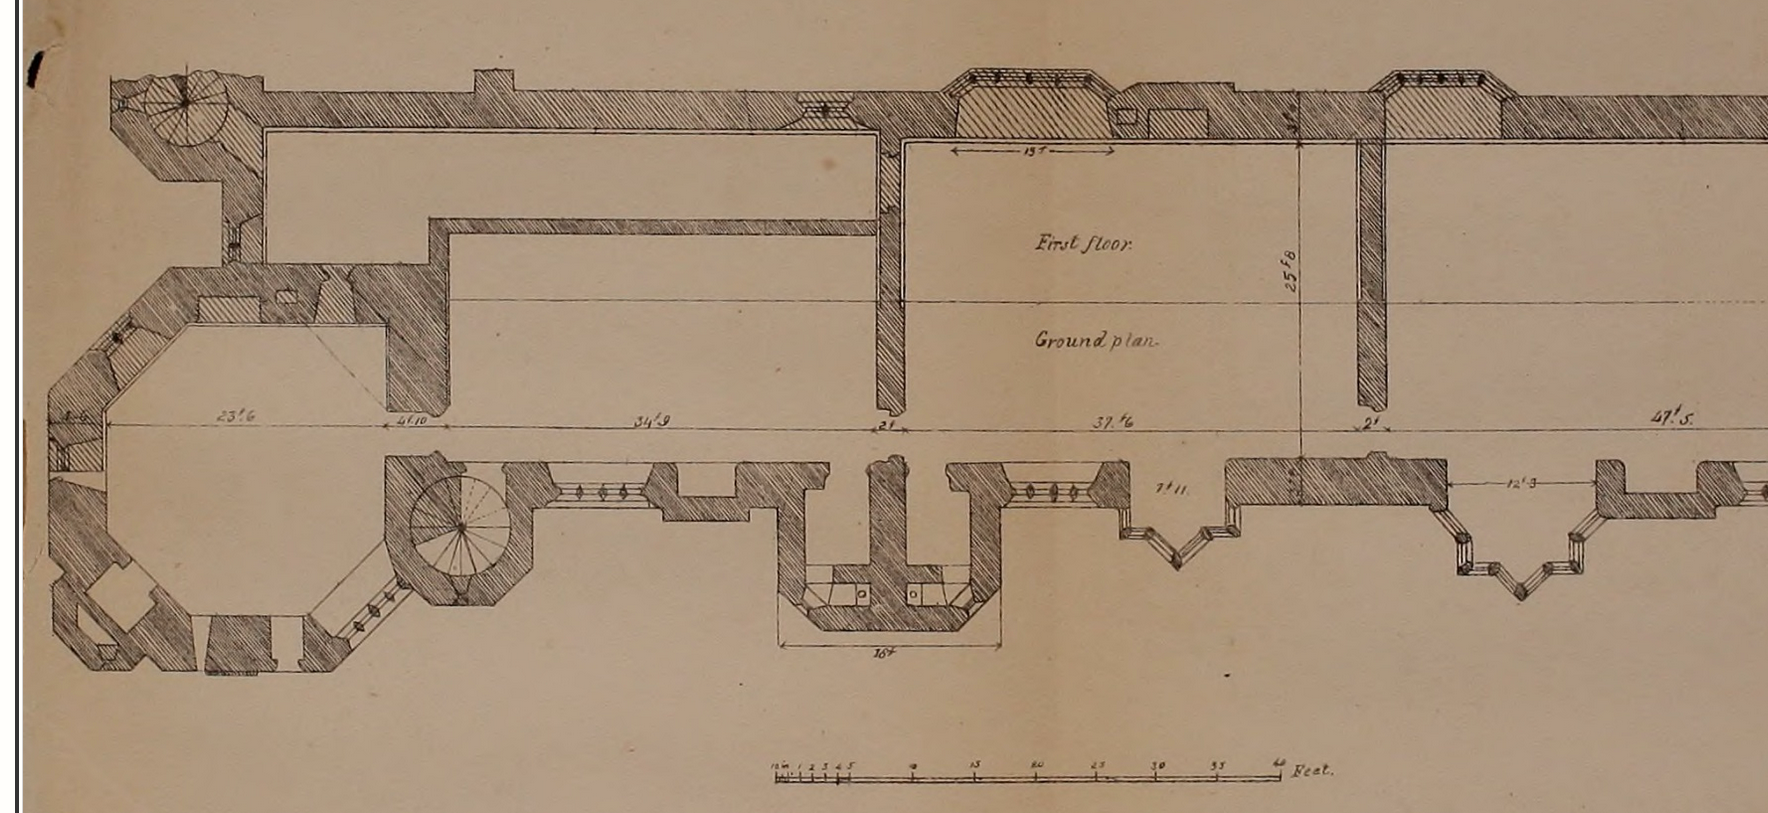 Using Historic drawings to initiate sensory (re)construction of sites.